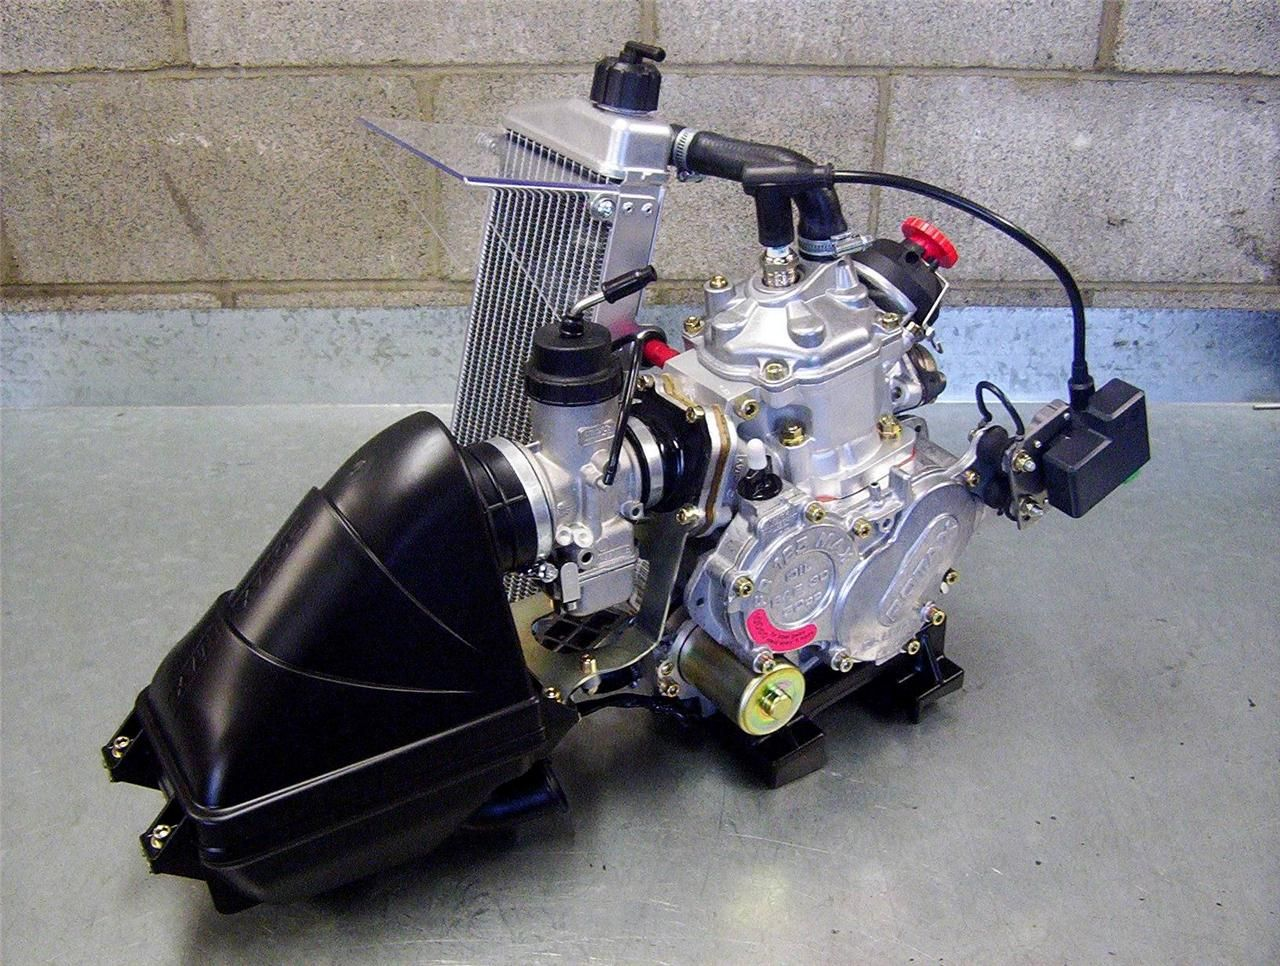 Rotax J-Max 125cc Kart Engine | Gentlemen, start your